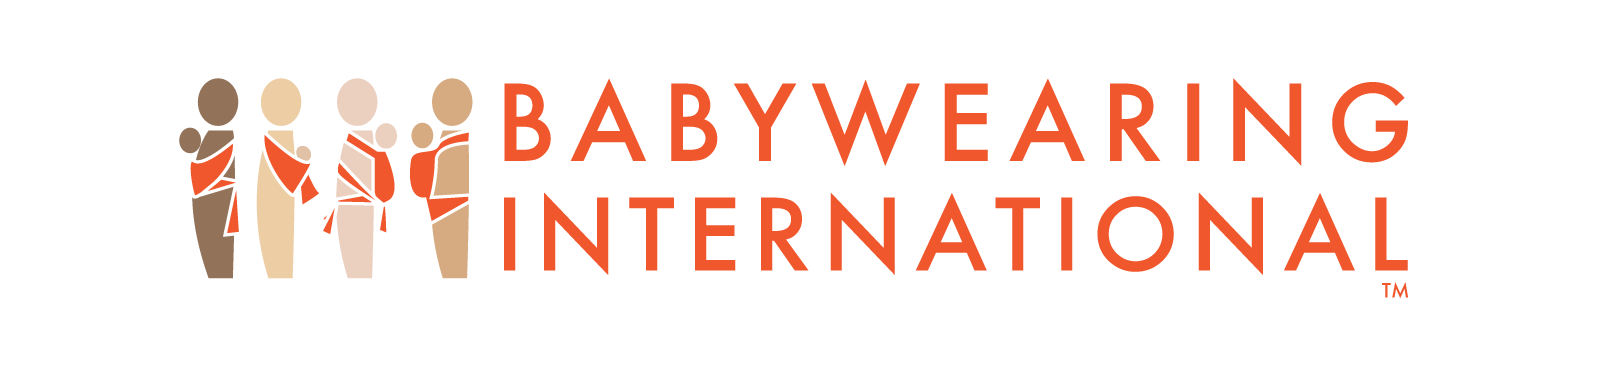 Babywearing International